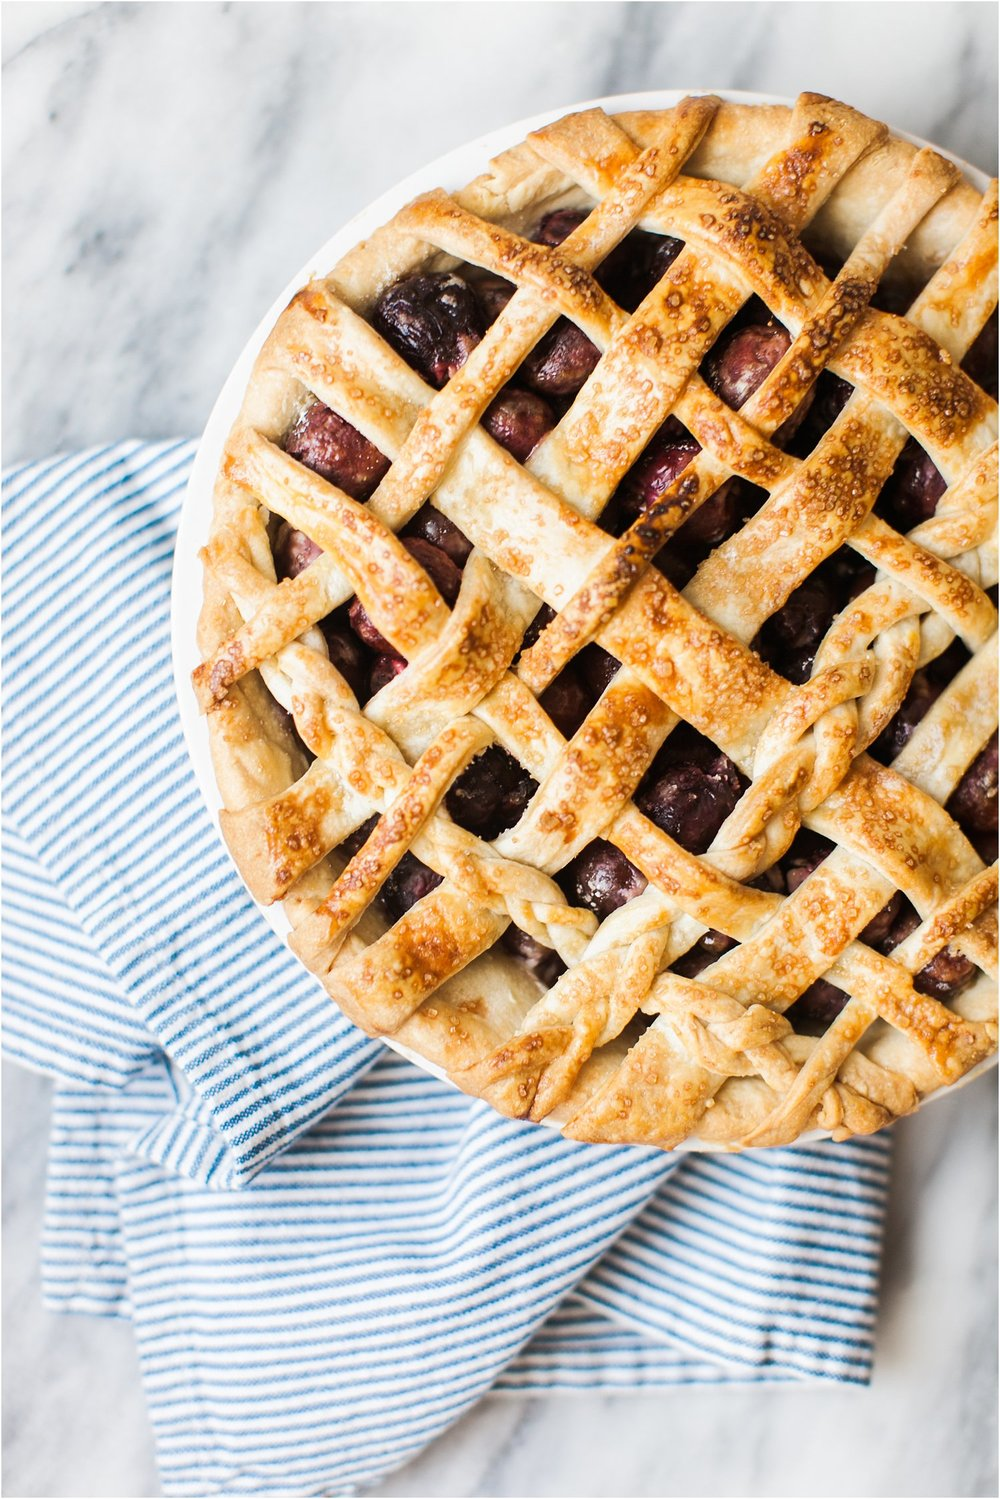 Sweet Cherry Pie with Mascarpone Whipped Cream | Memorial Day Dessert | Feast & Dwell